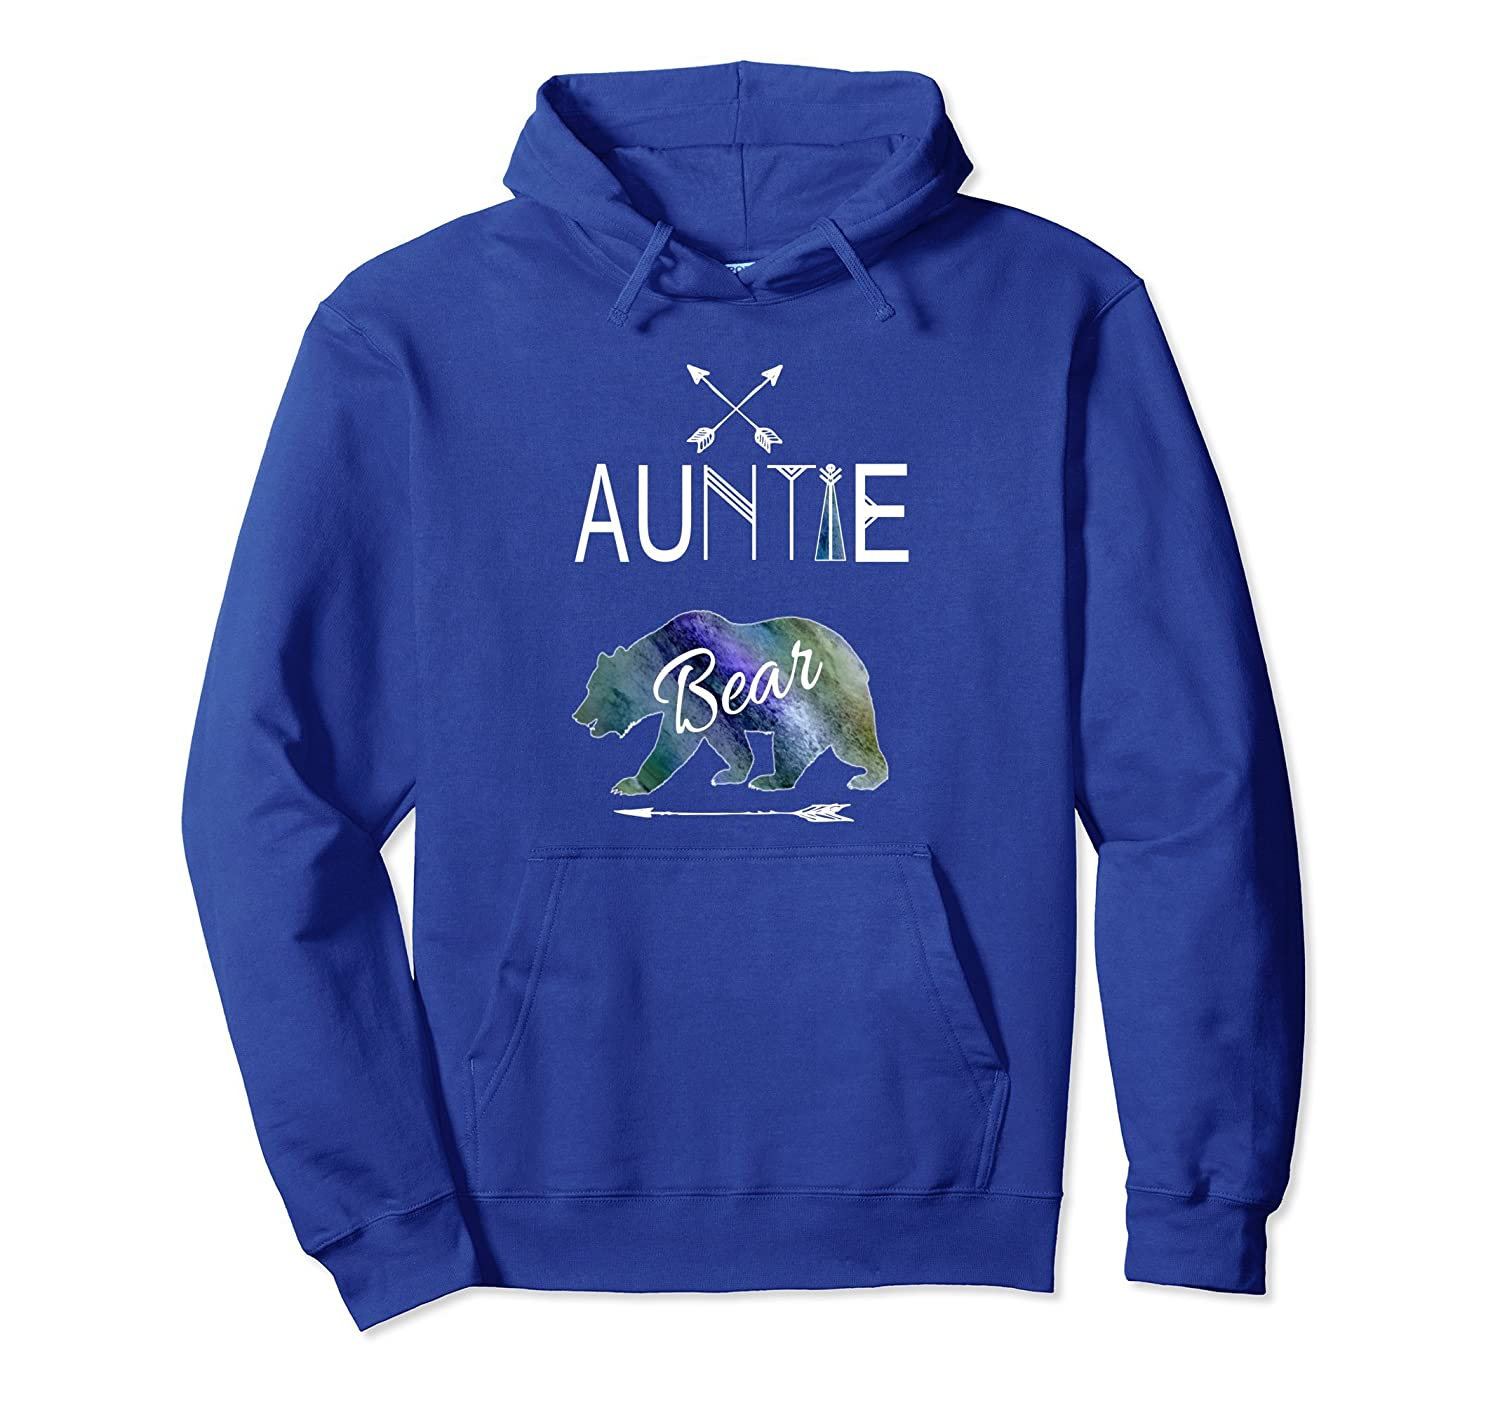 Auntie Bear Hoodie Tribal Family Vacation & Camping-AZP